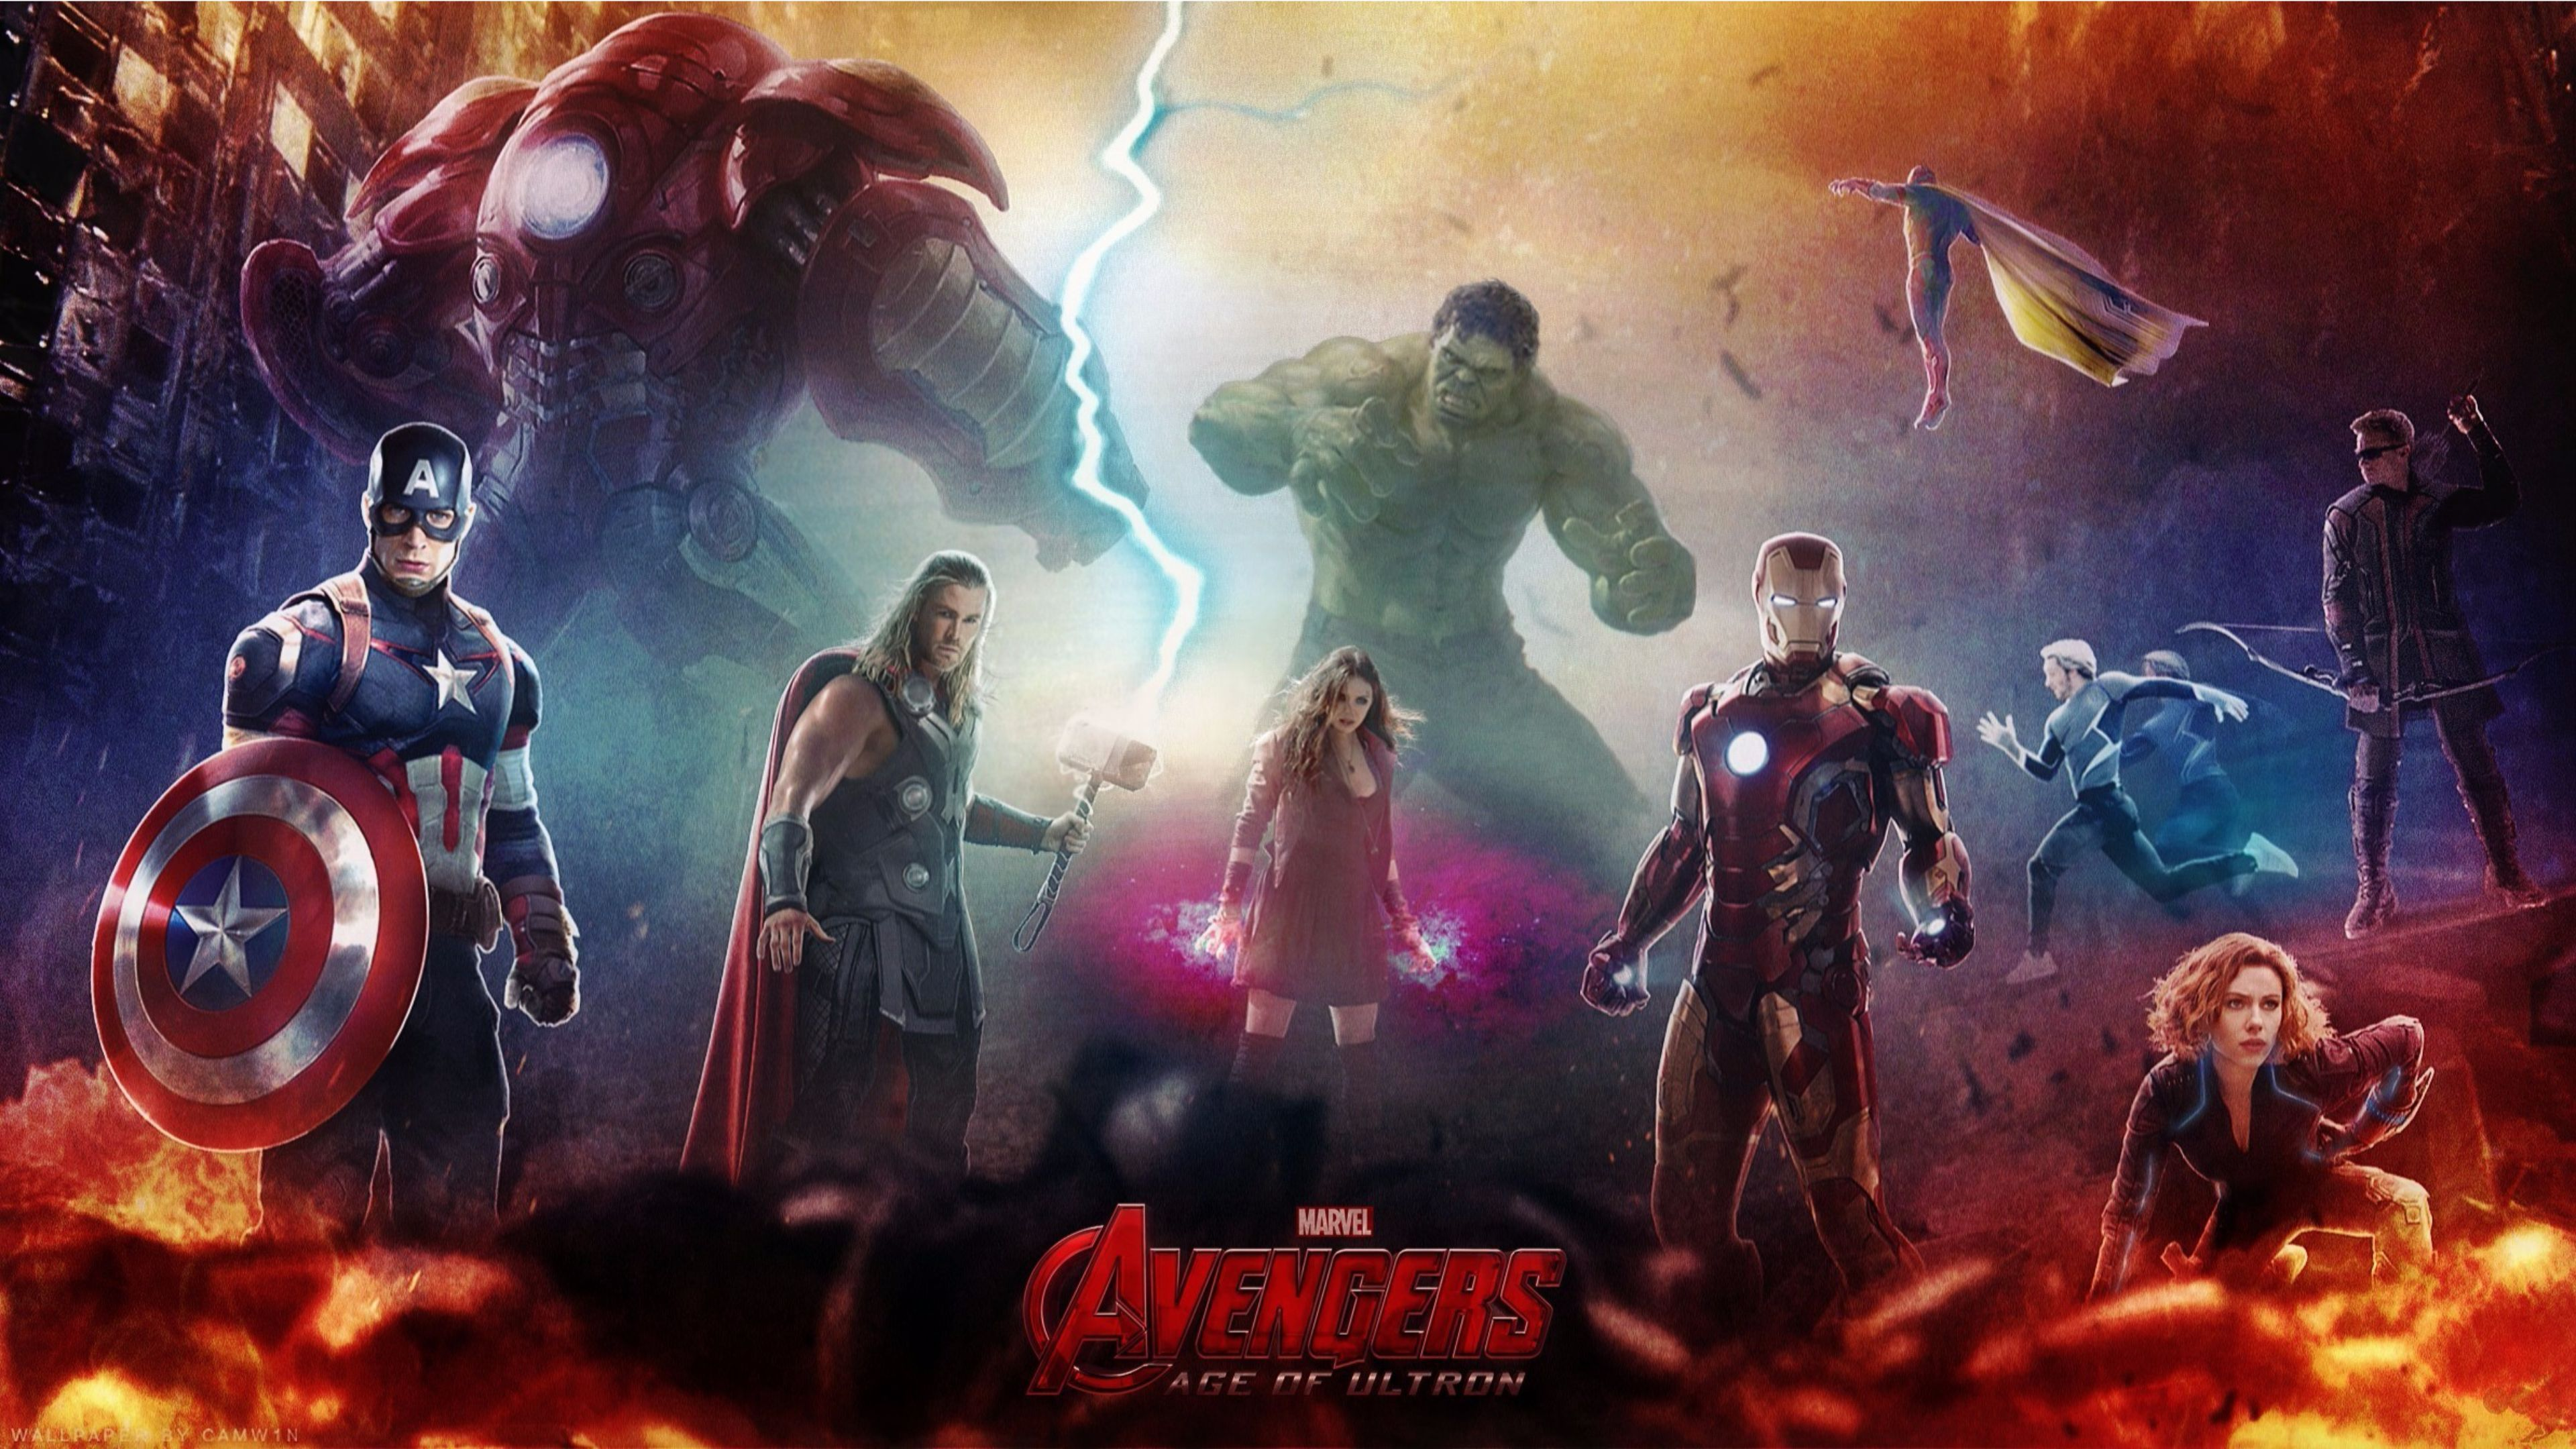 Avengers Wallpapers Photos And Desktop Backgrounds Up To HD Wallpapers Download Free Images Wallpaper [1000image.com]